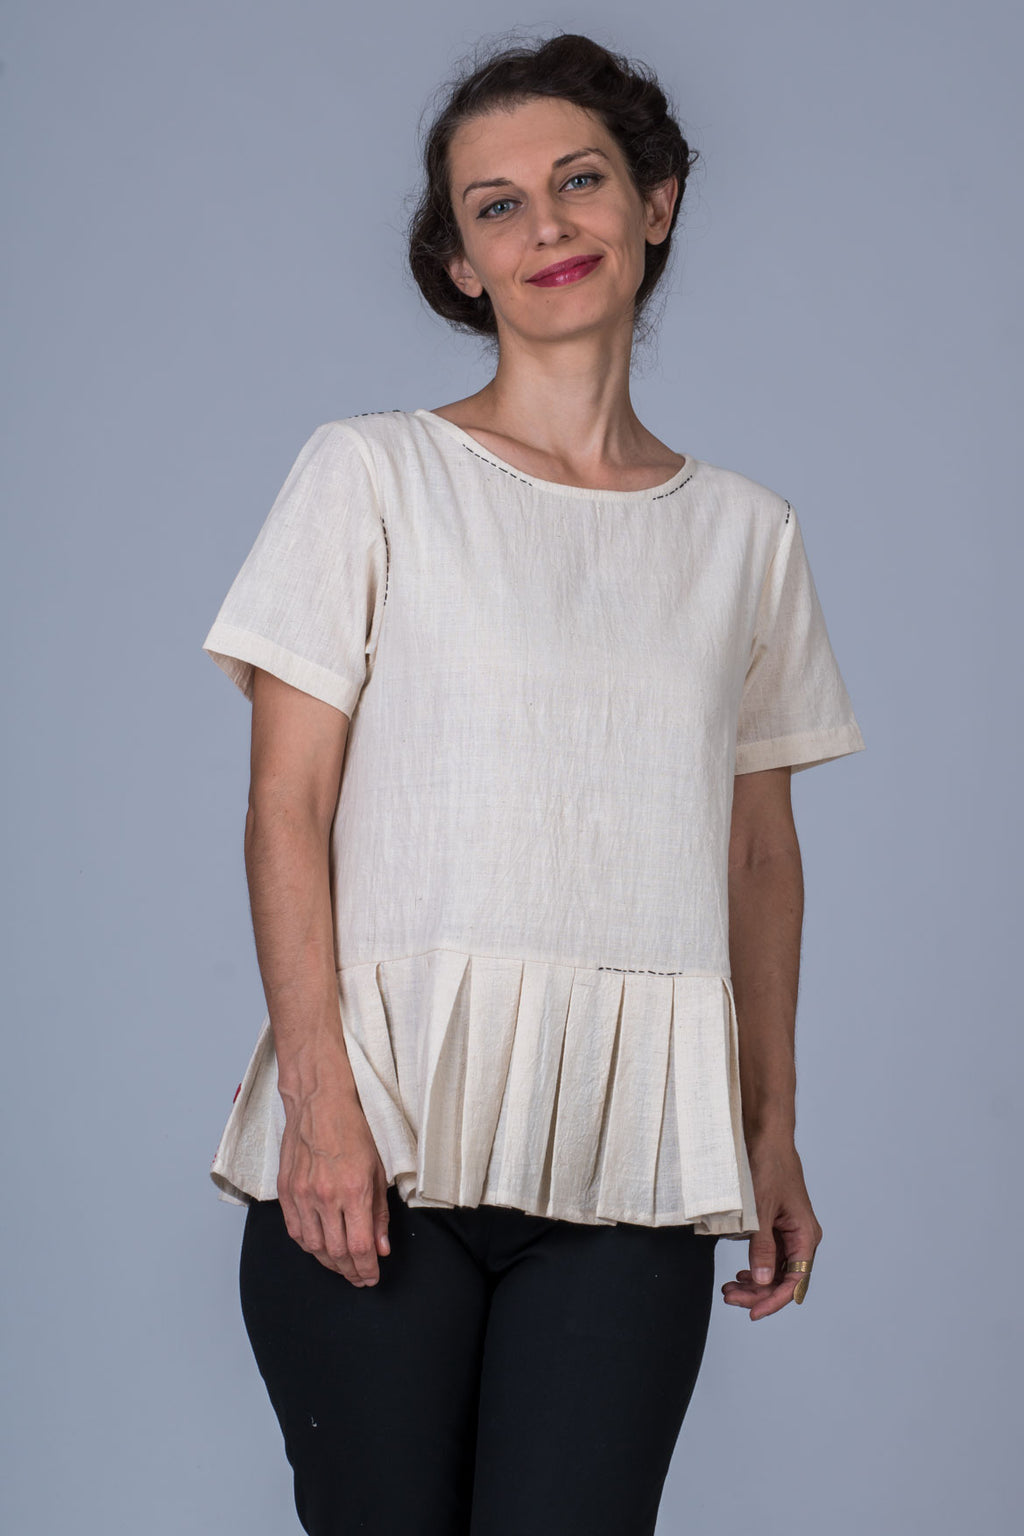 Off White Desi Cotton Top - WHY - Upasana Design Studio